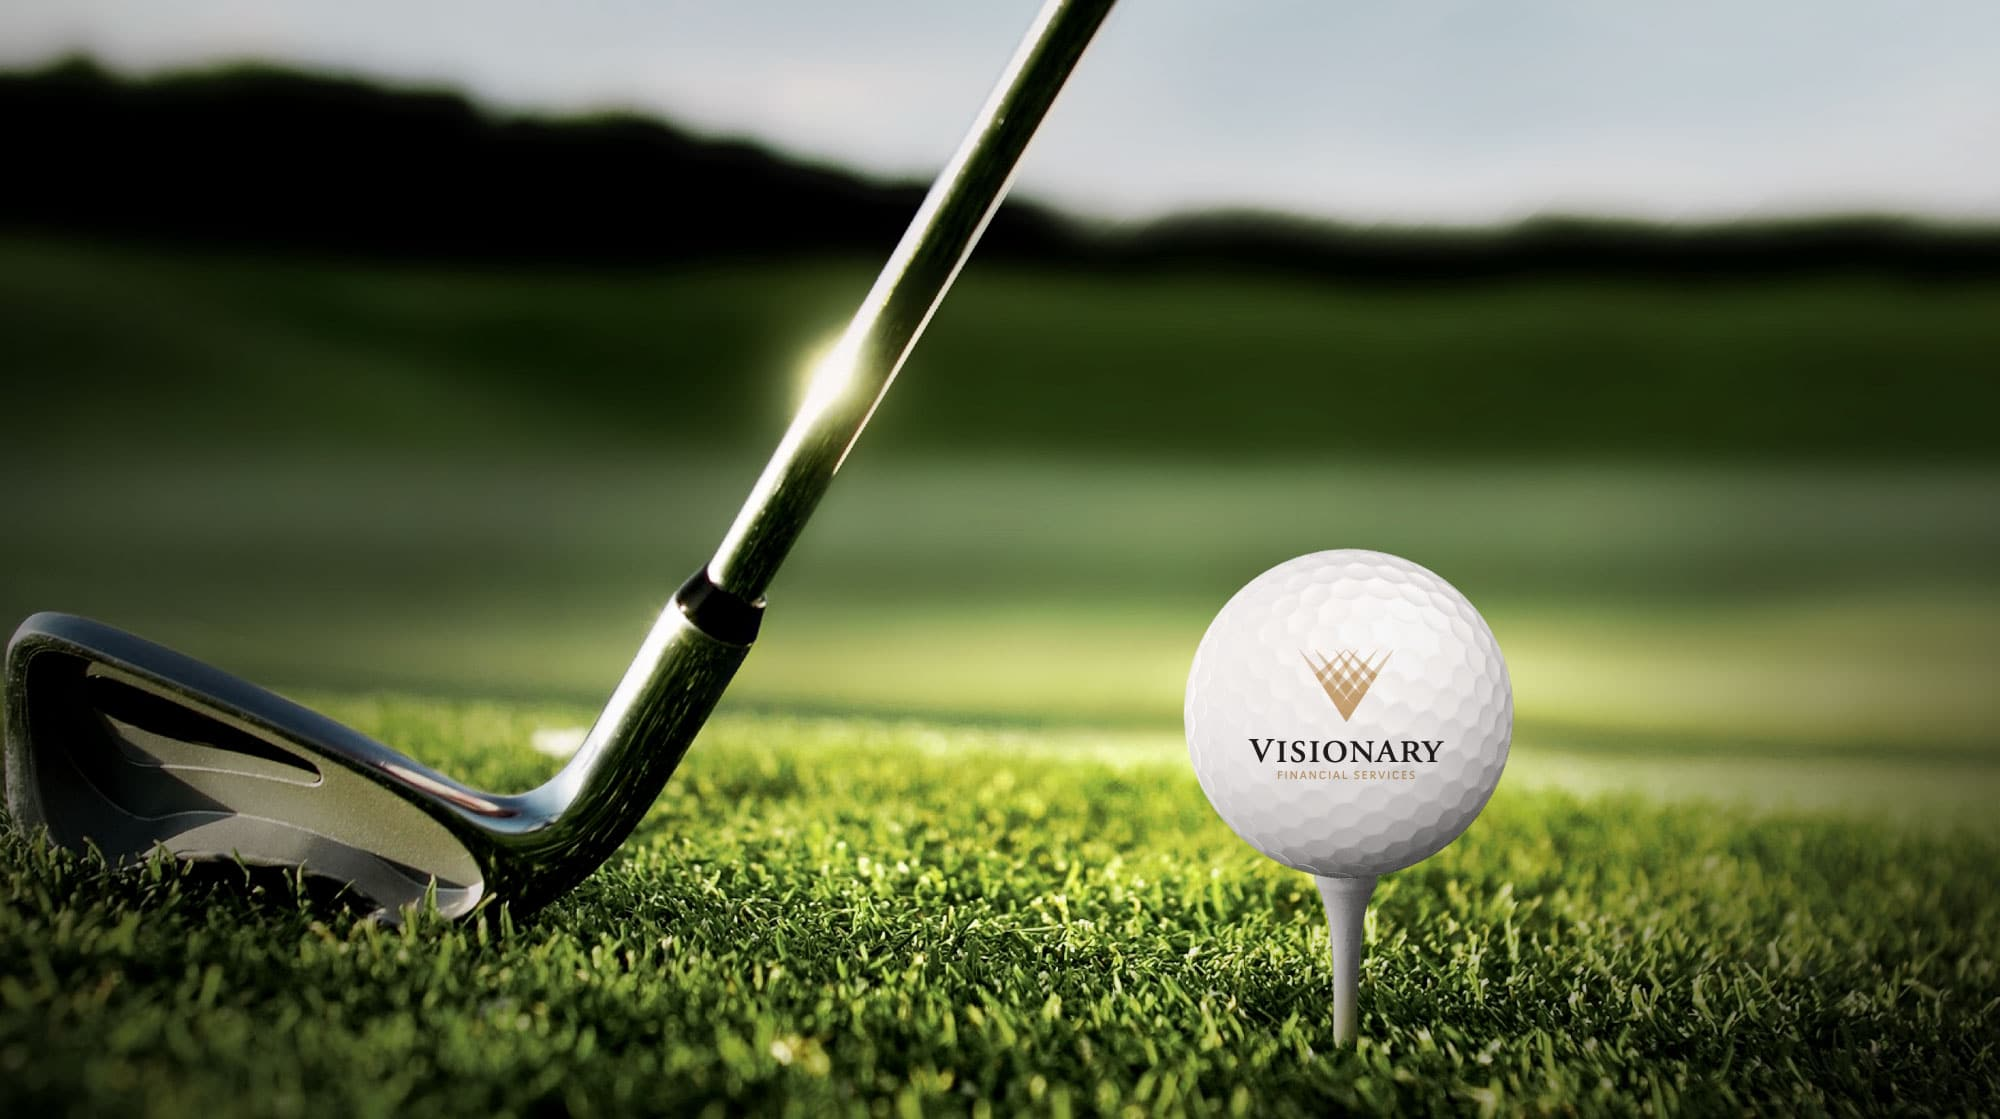 Visionary Logo Branded Golfball